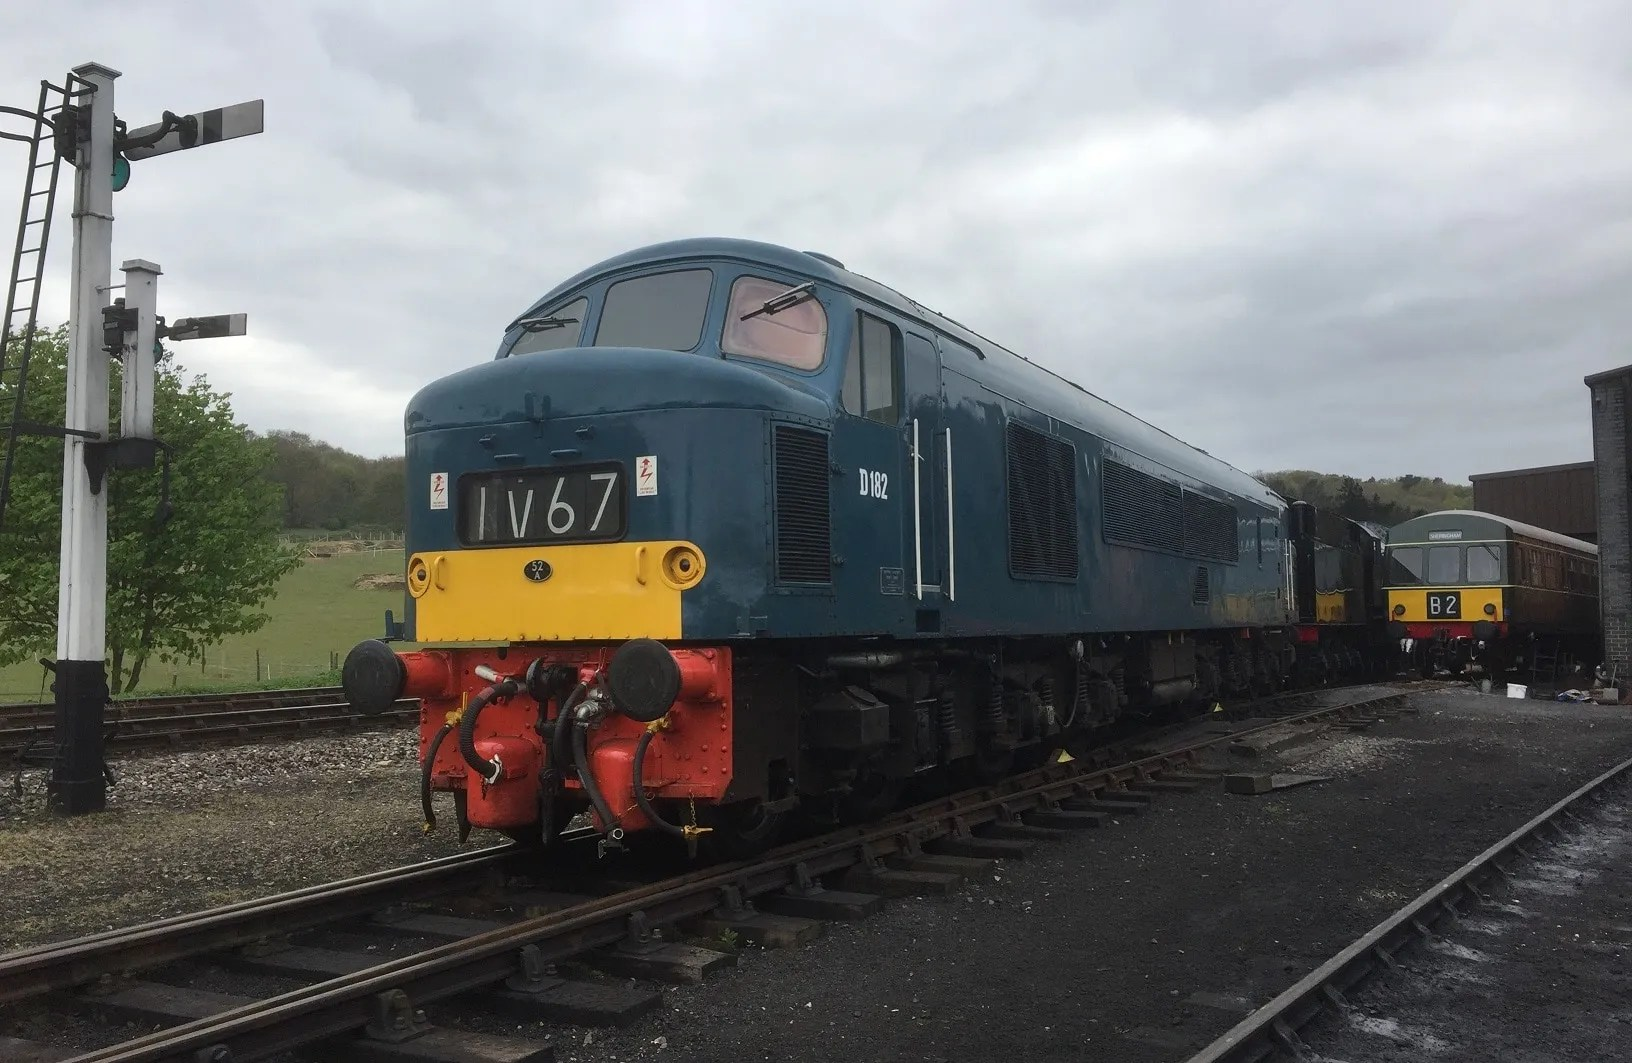 Class 46 D182 on Weybourne shed yard at the North Norfolk Railway